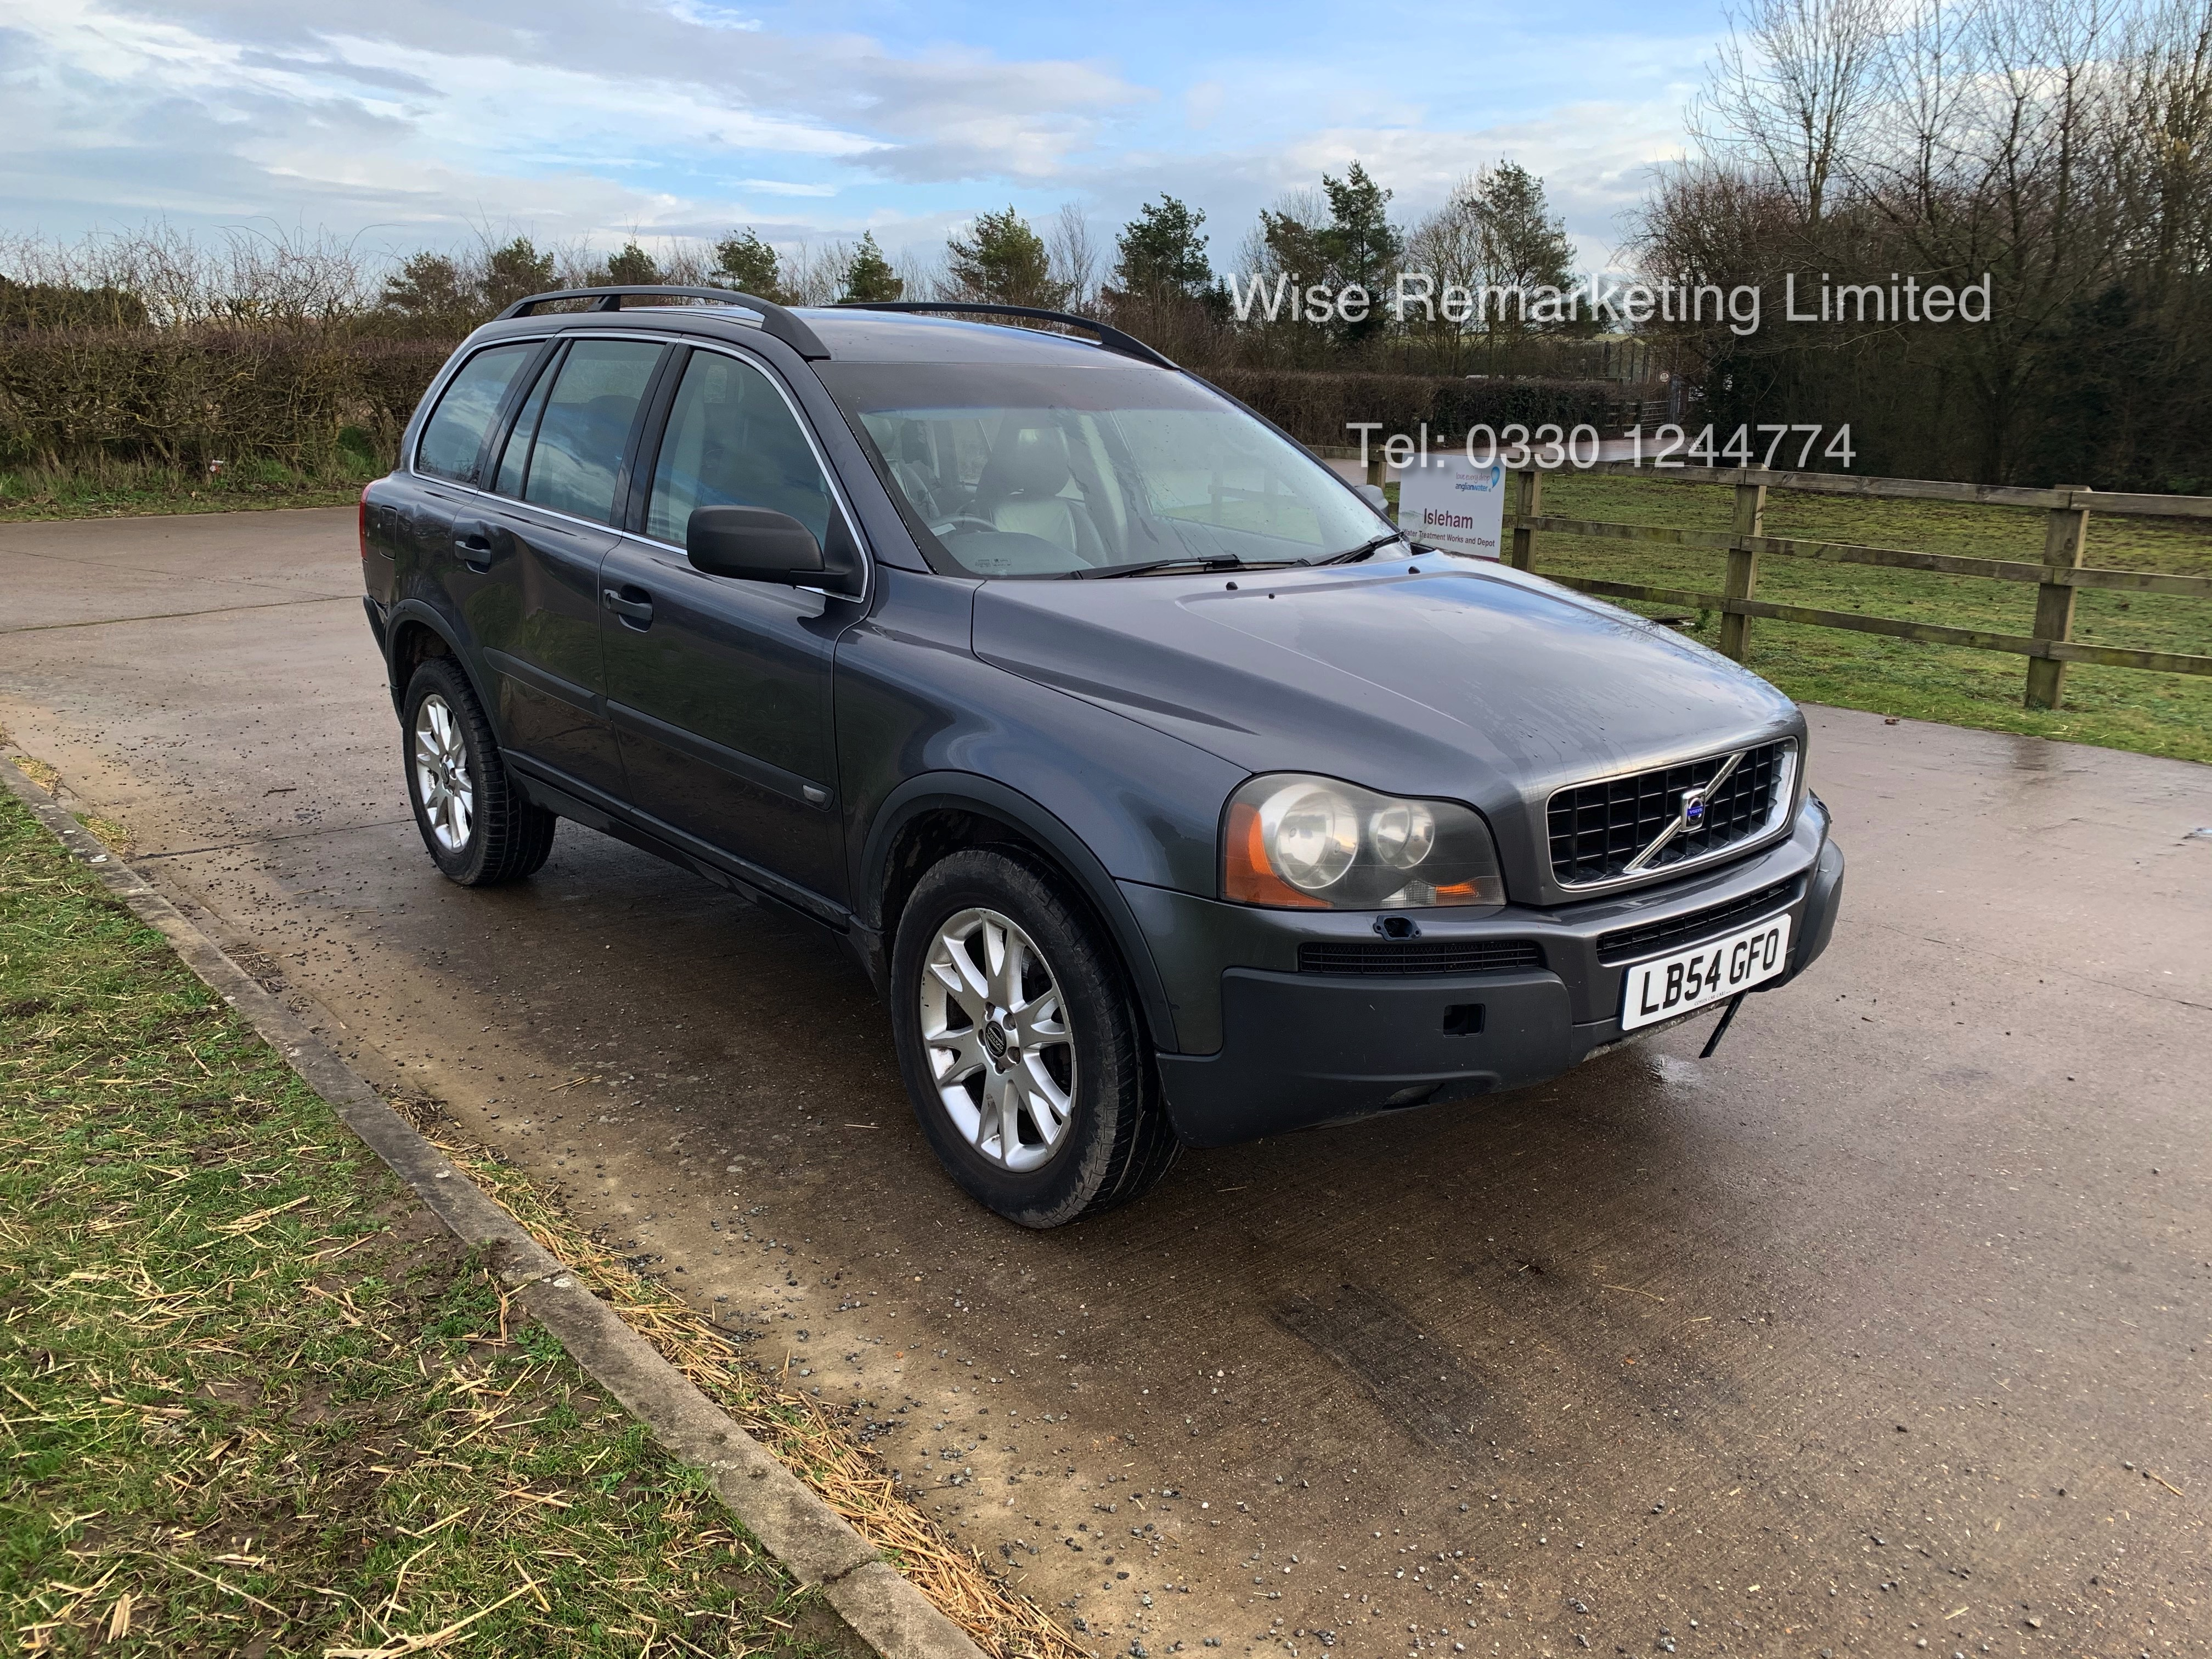 Volvo XC90 D5 2.4 Special Equipment Auto - 2005 Model - 7 Seater - Full Leather -